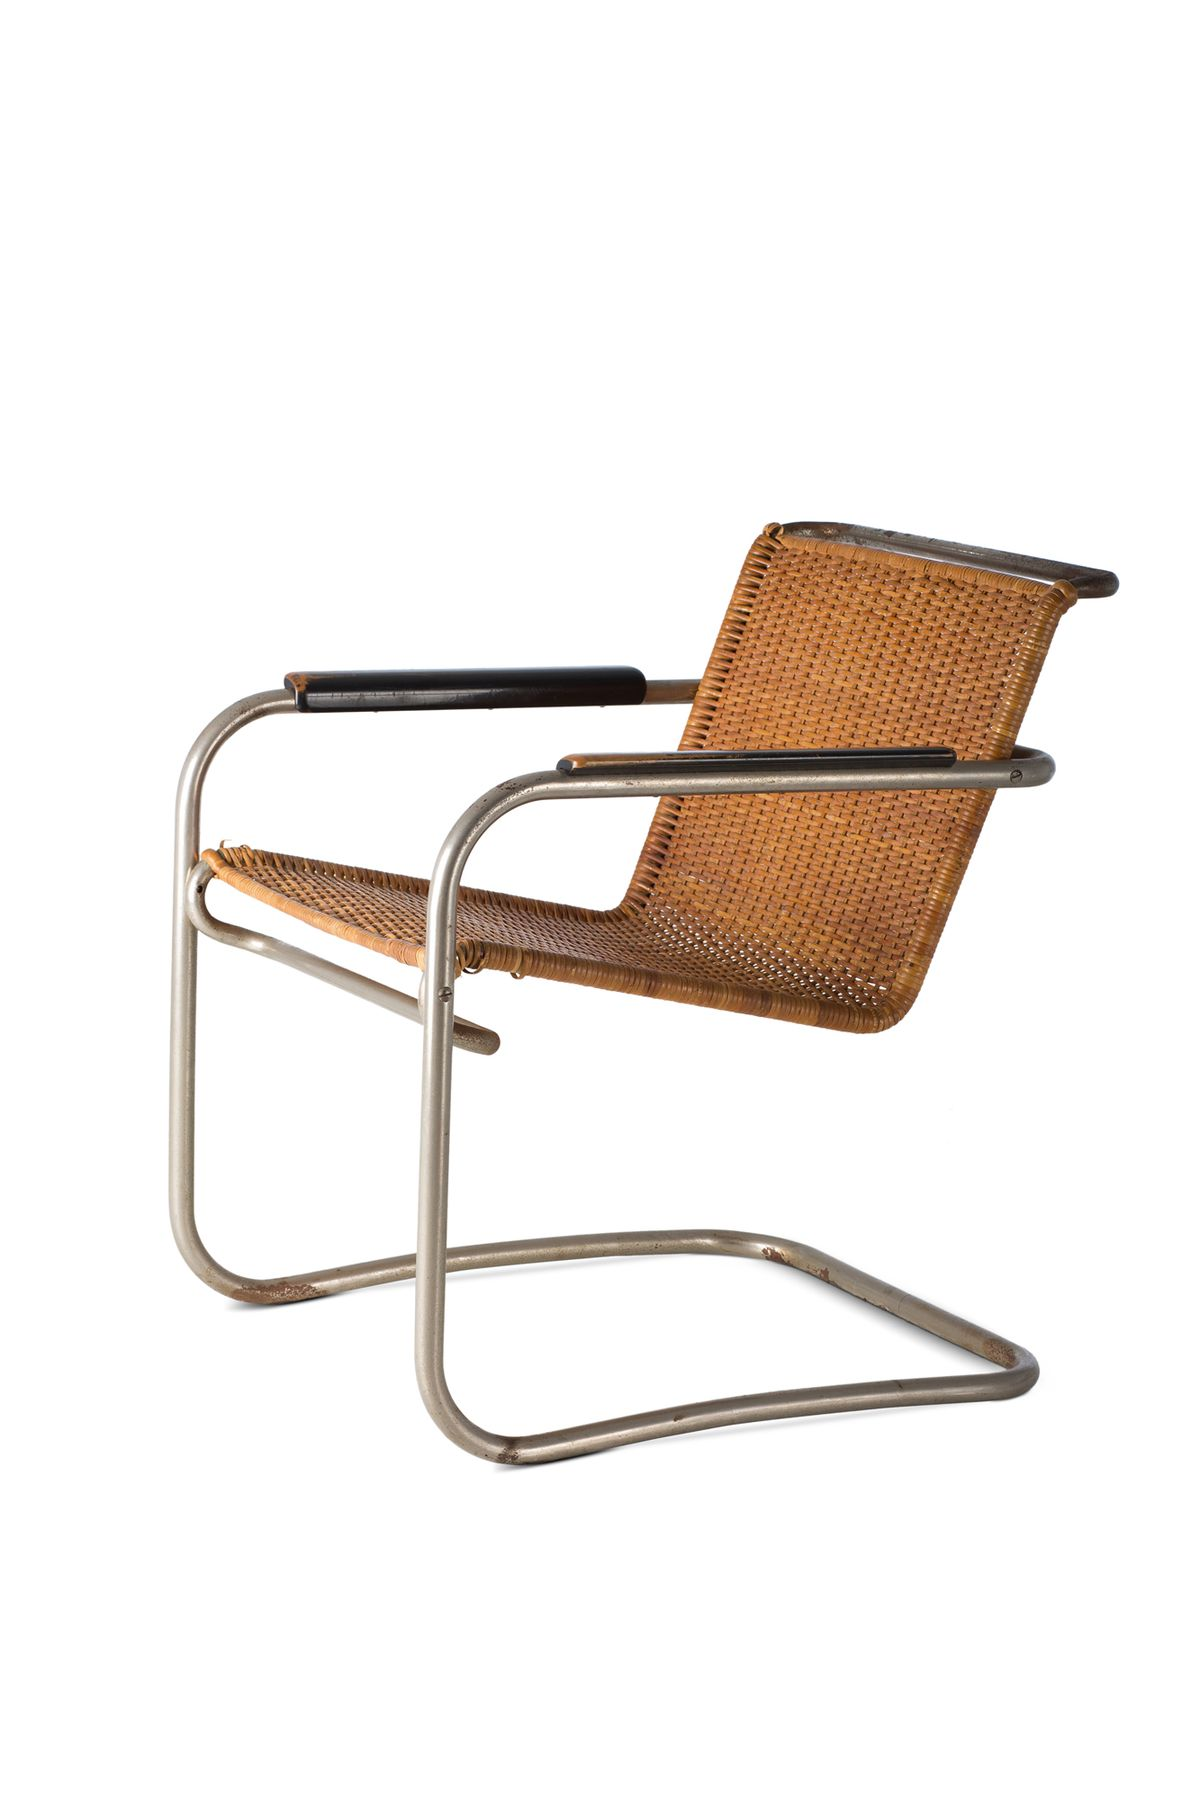 Wicker chair with tube legs